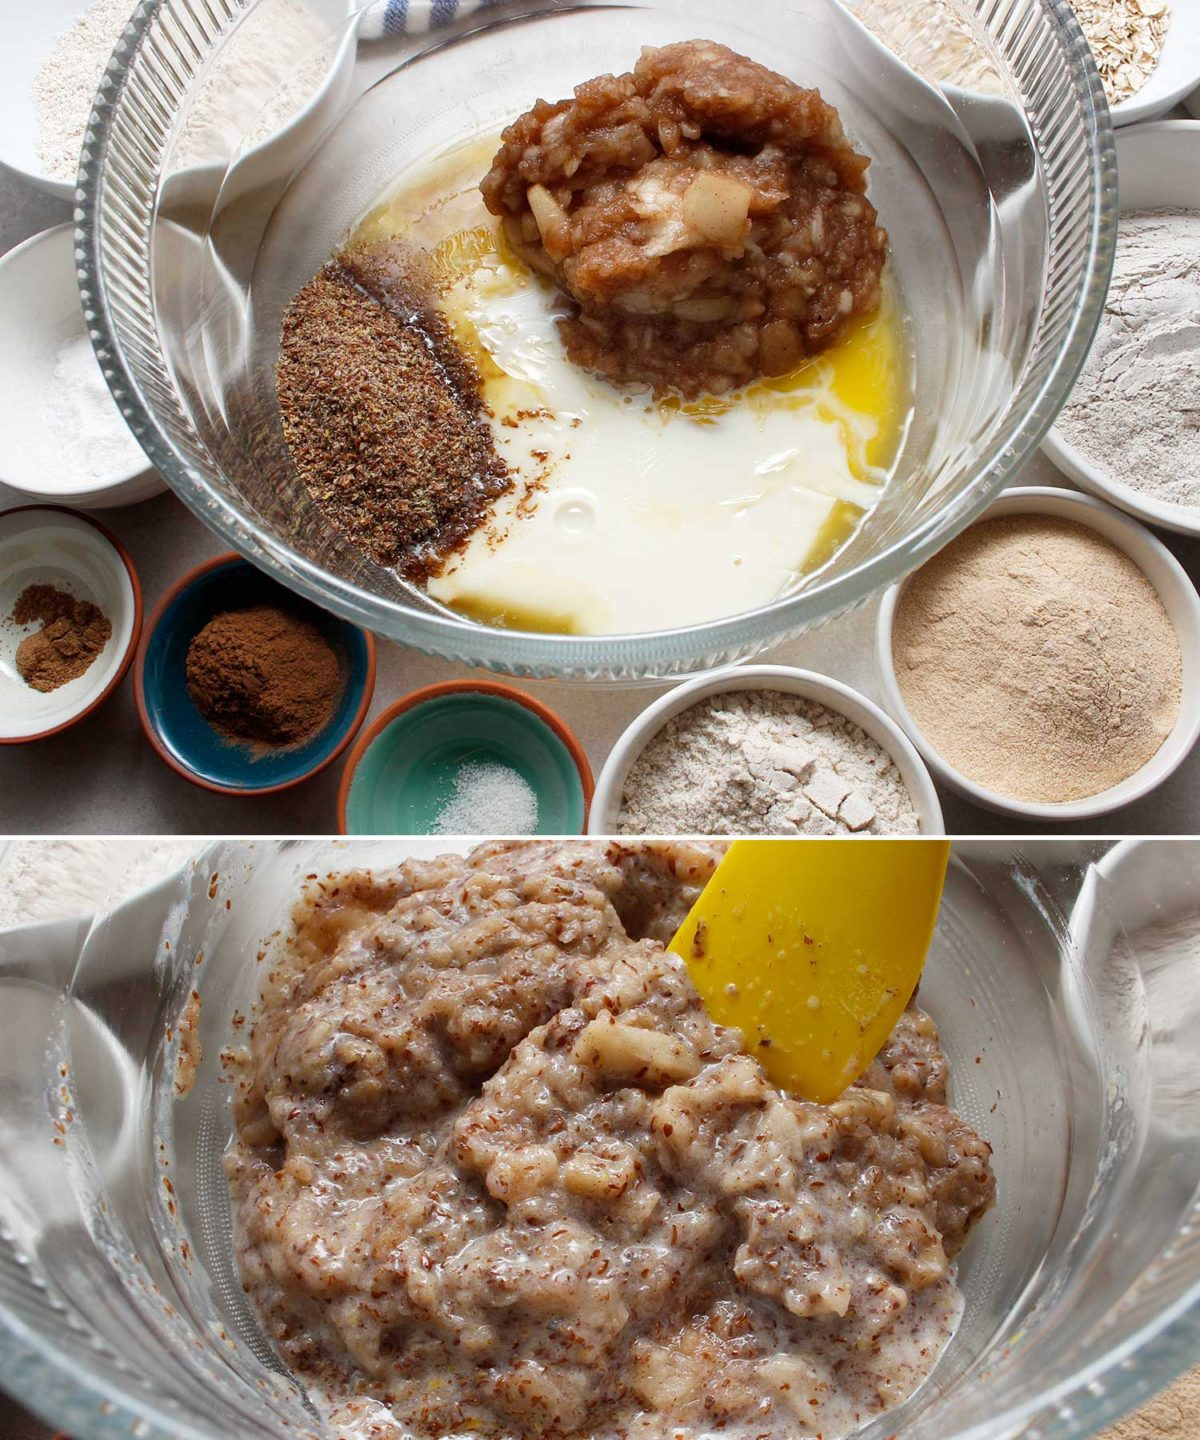 Ingredients such as flours, coconut sugar and spices used in gluten-free, vegan apple crisp bread.